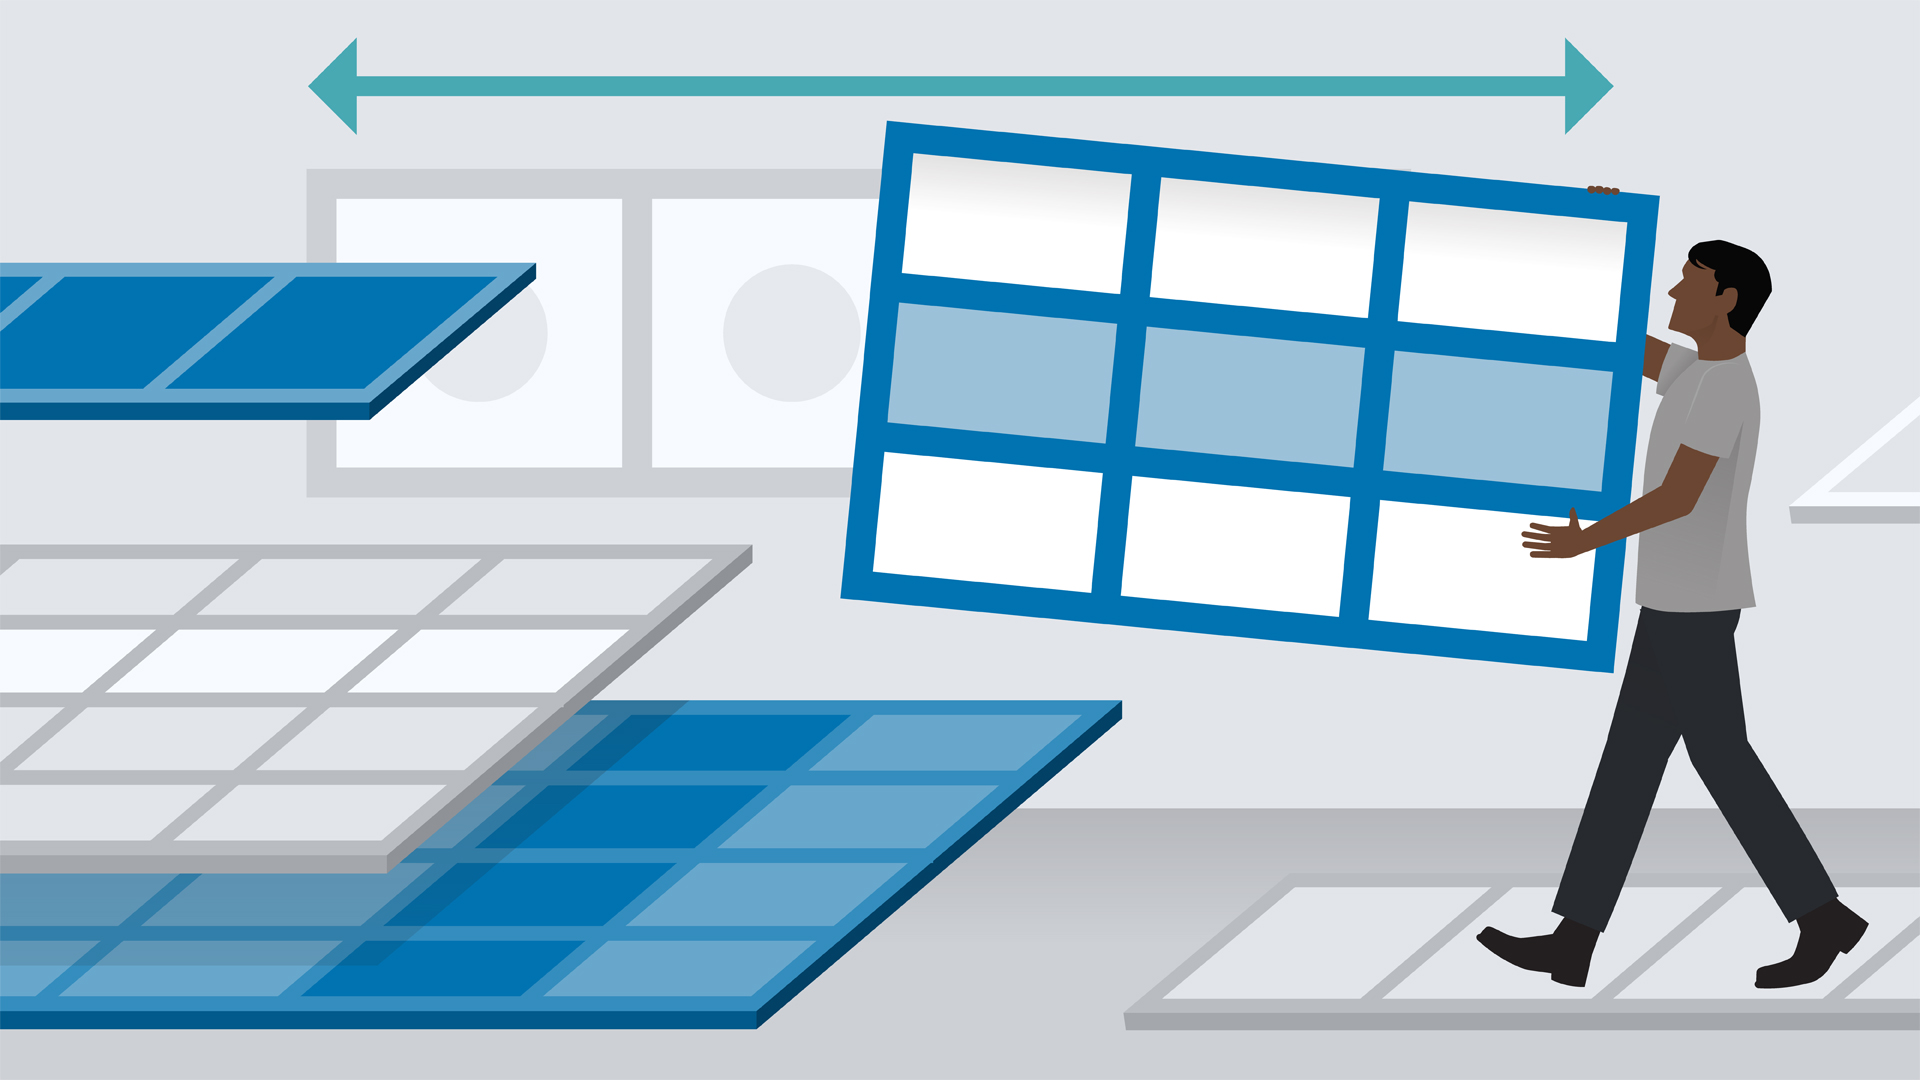 Web Portfolio Projects: Sortable Table and Arrays